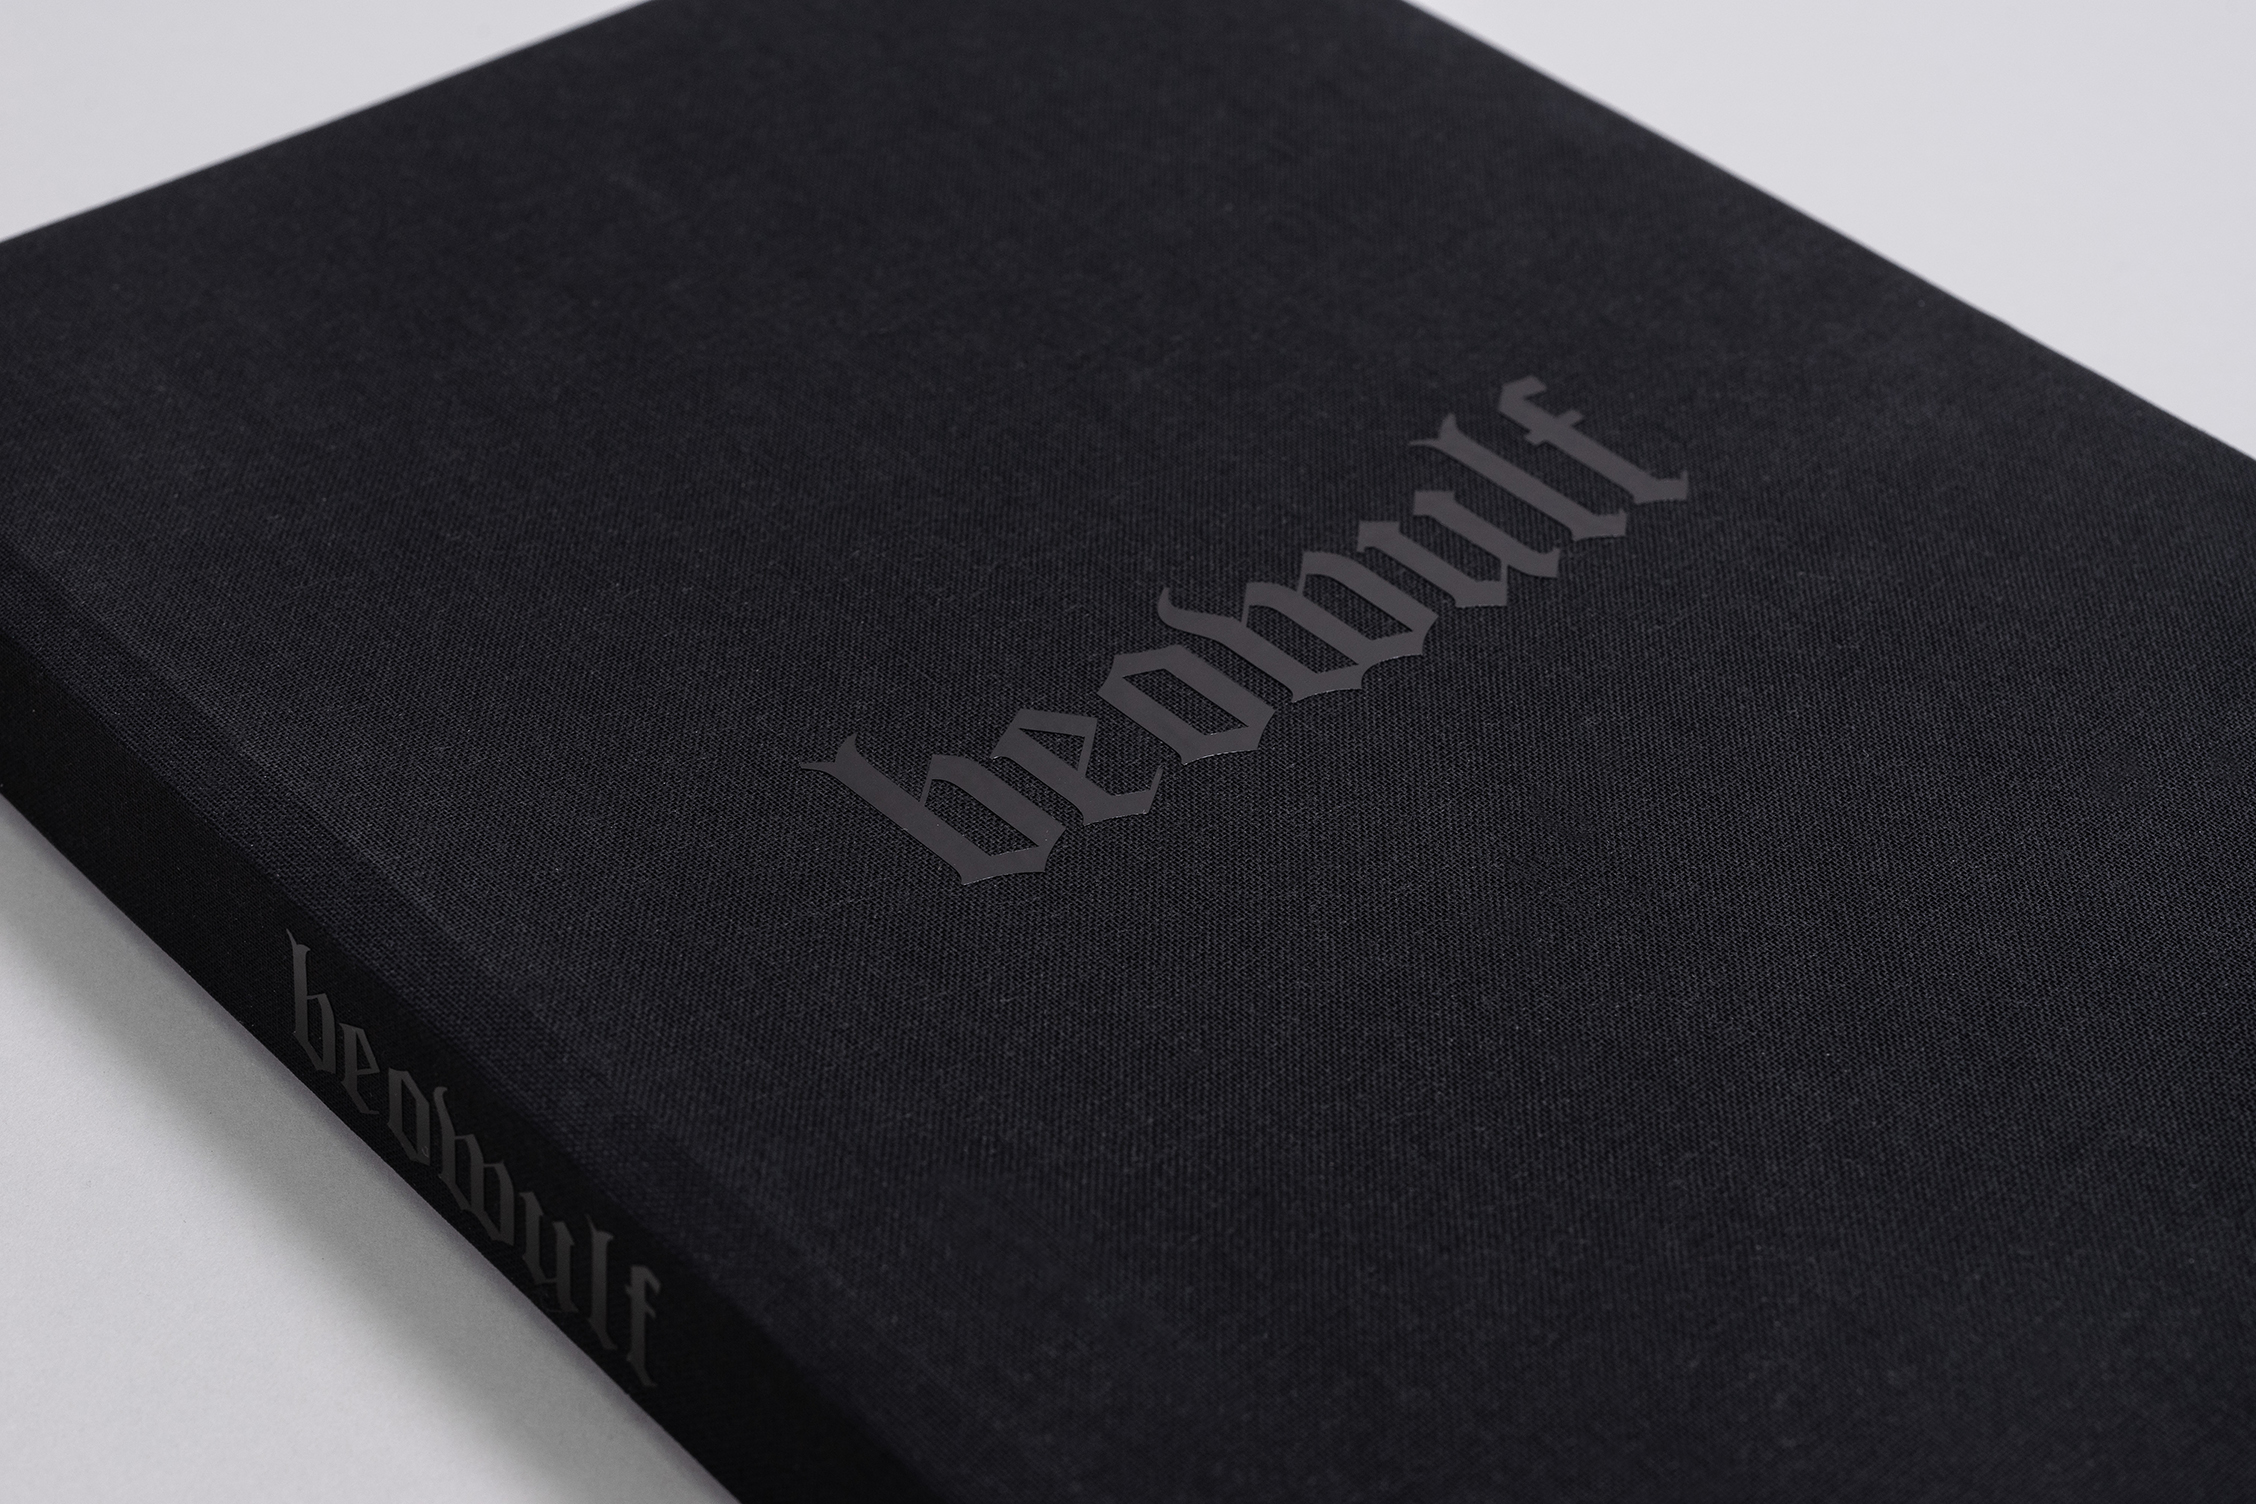 beowulf_detail_002